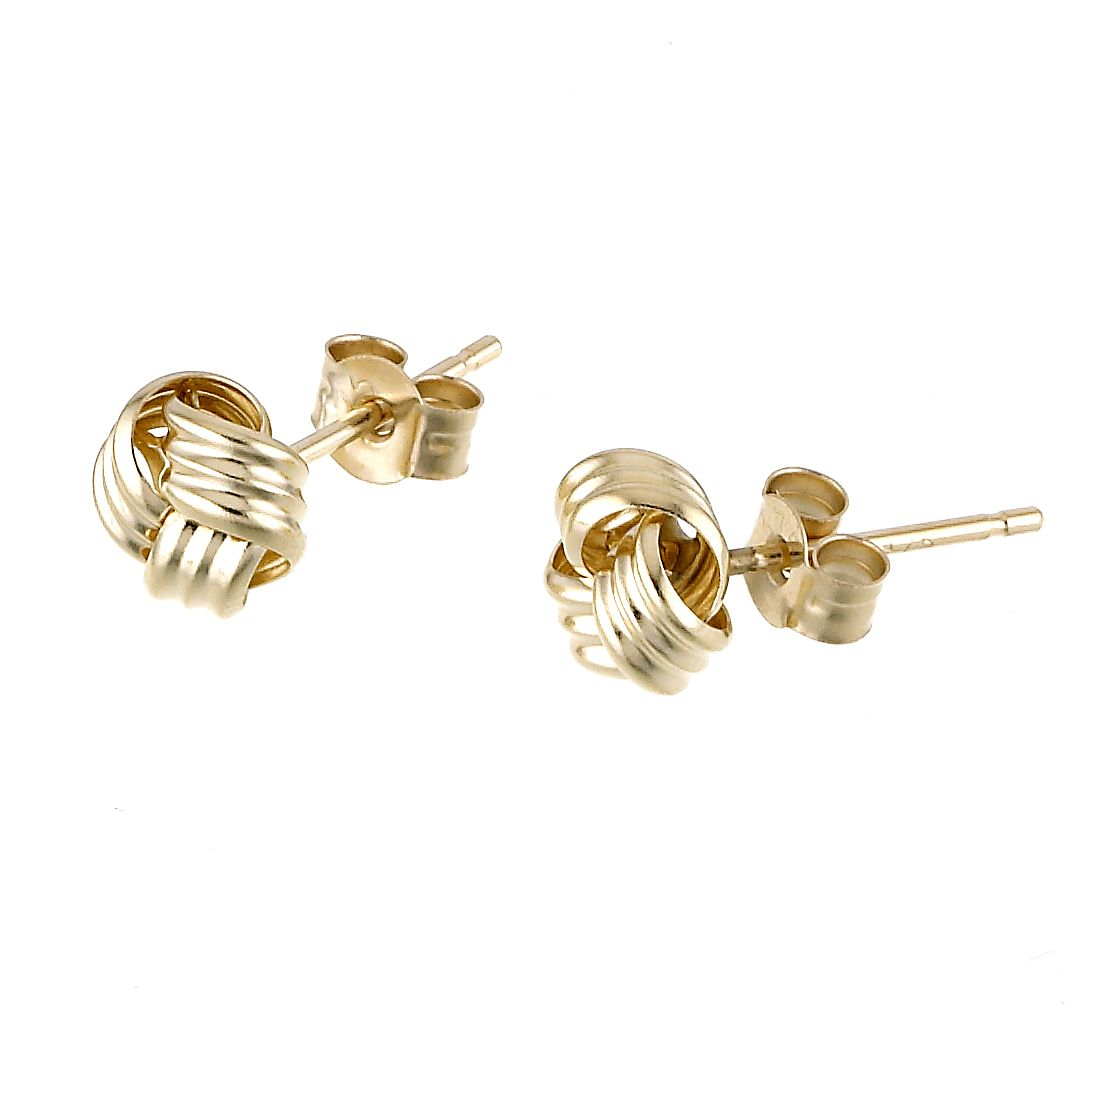 9ct yellow gold small knot stud earrings - Ernest Jones